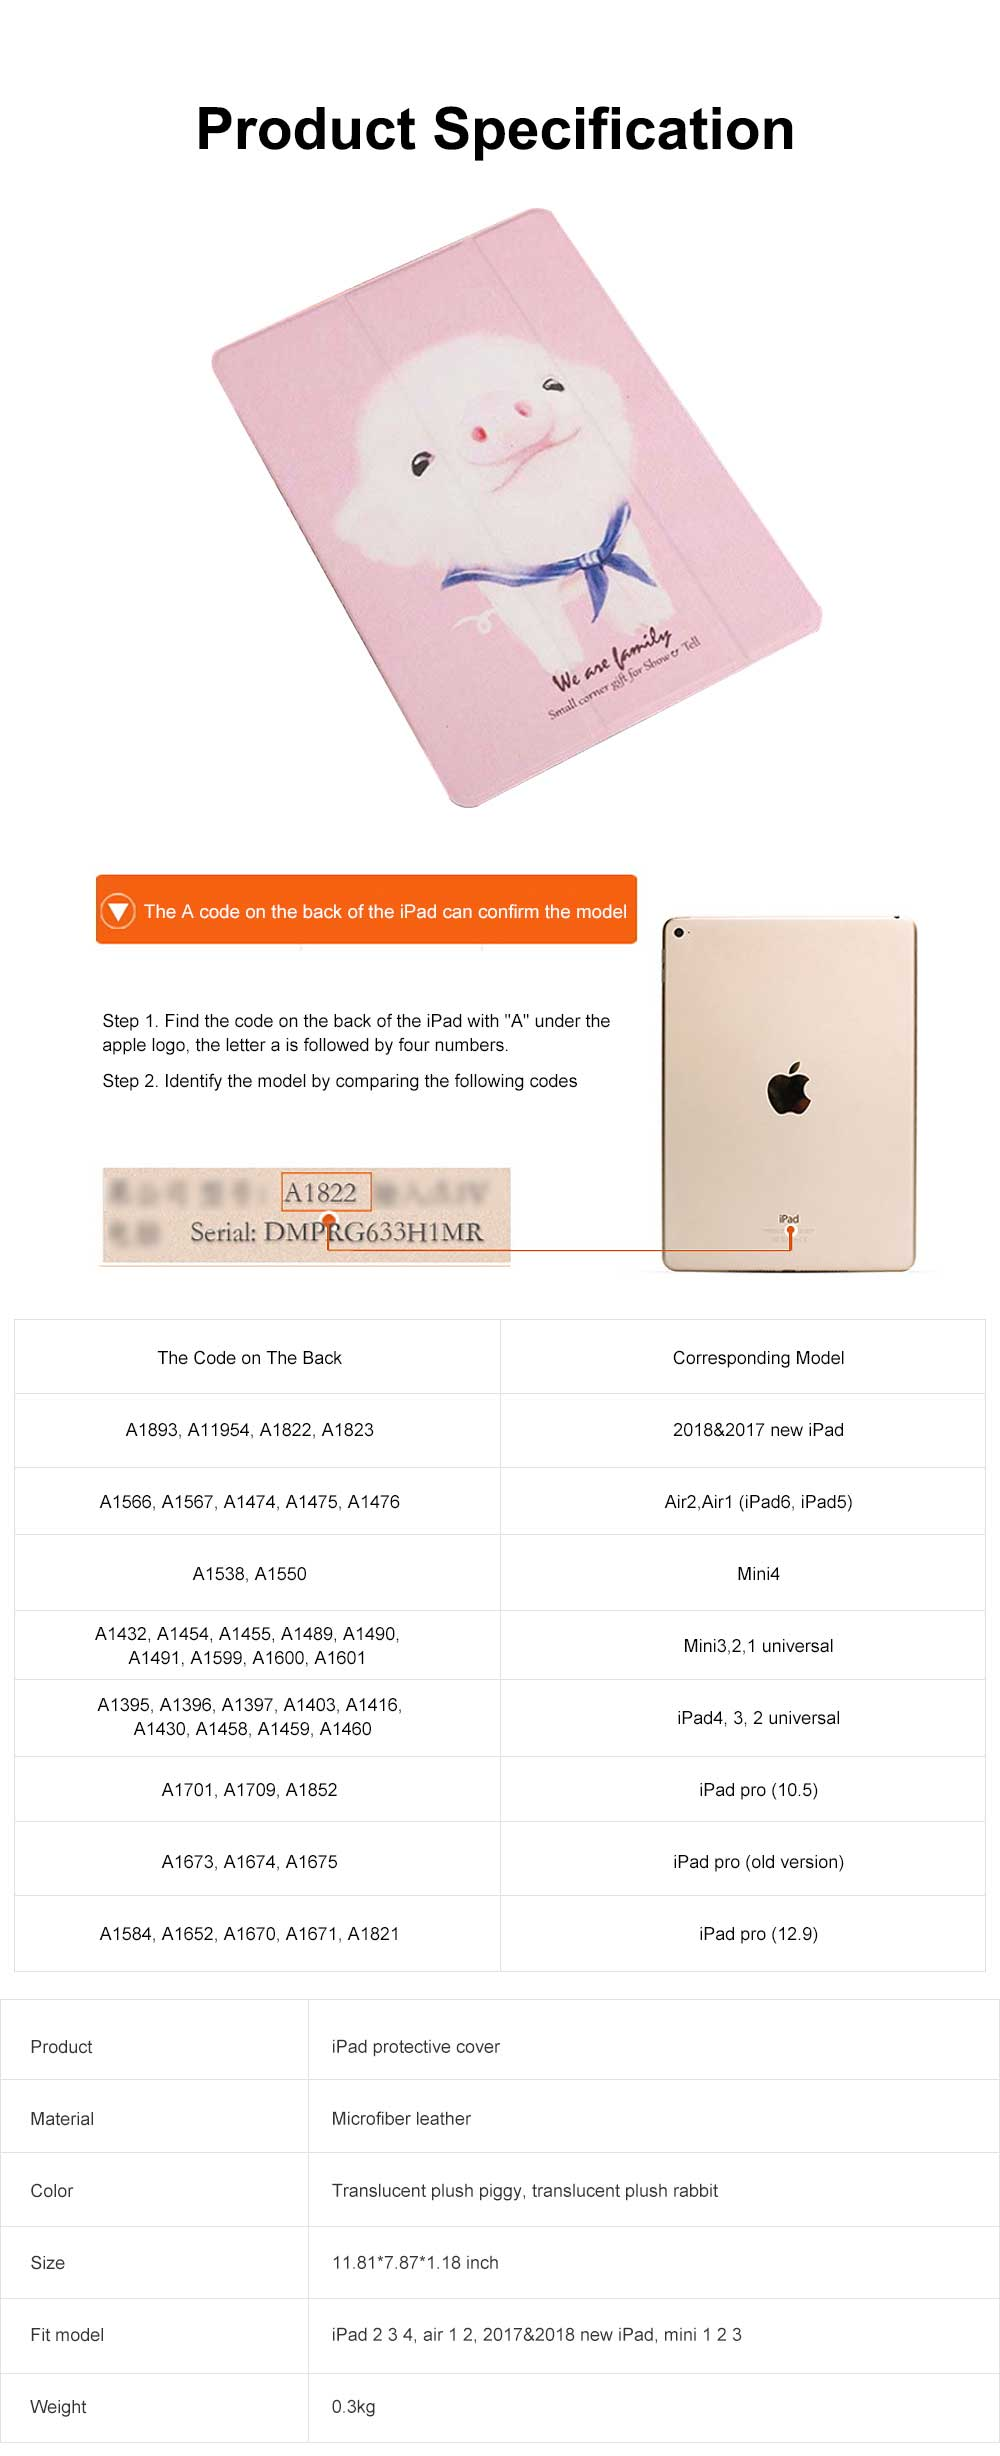 Imitation Leather Protective Cover, Ultra-thin Shockproof Dormancy Protective Case for iPad Mini 4 5 12 3, Air 1 2, New iPad 9.7 2018 2017 6